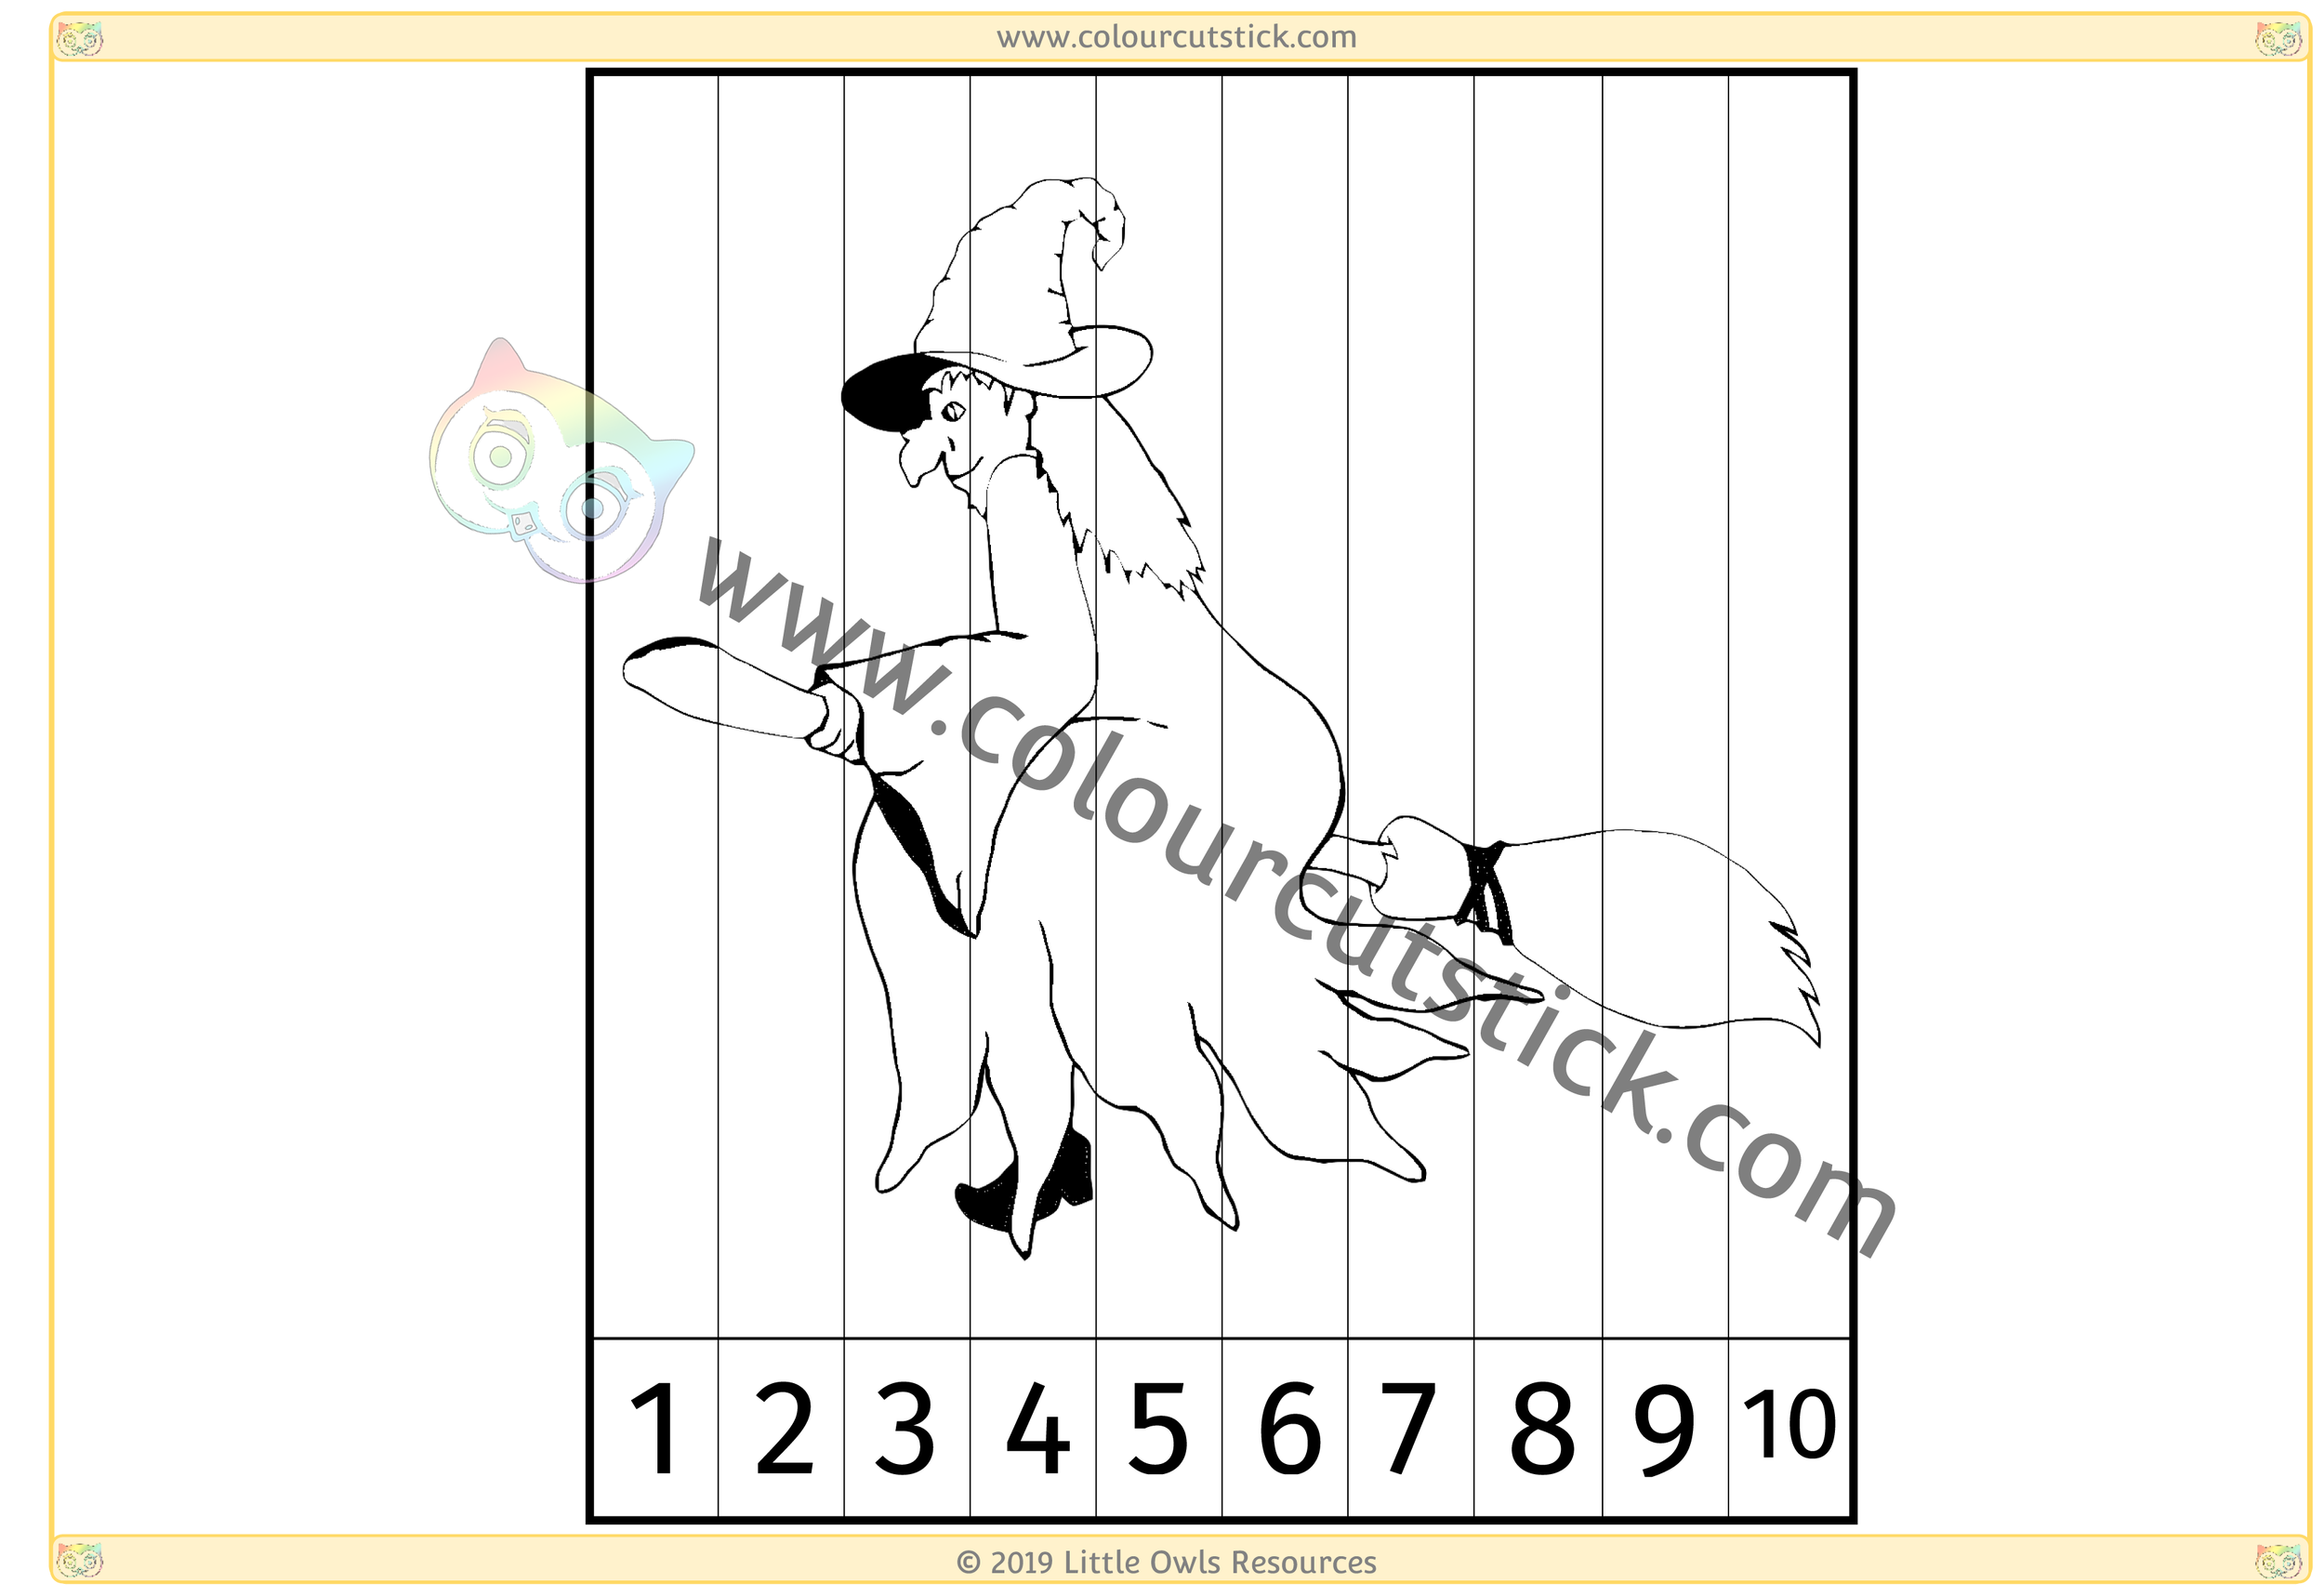 Witch on Broomstick Number Slice Puzzle 1-10 -